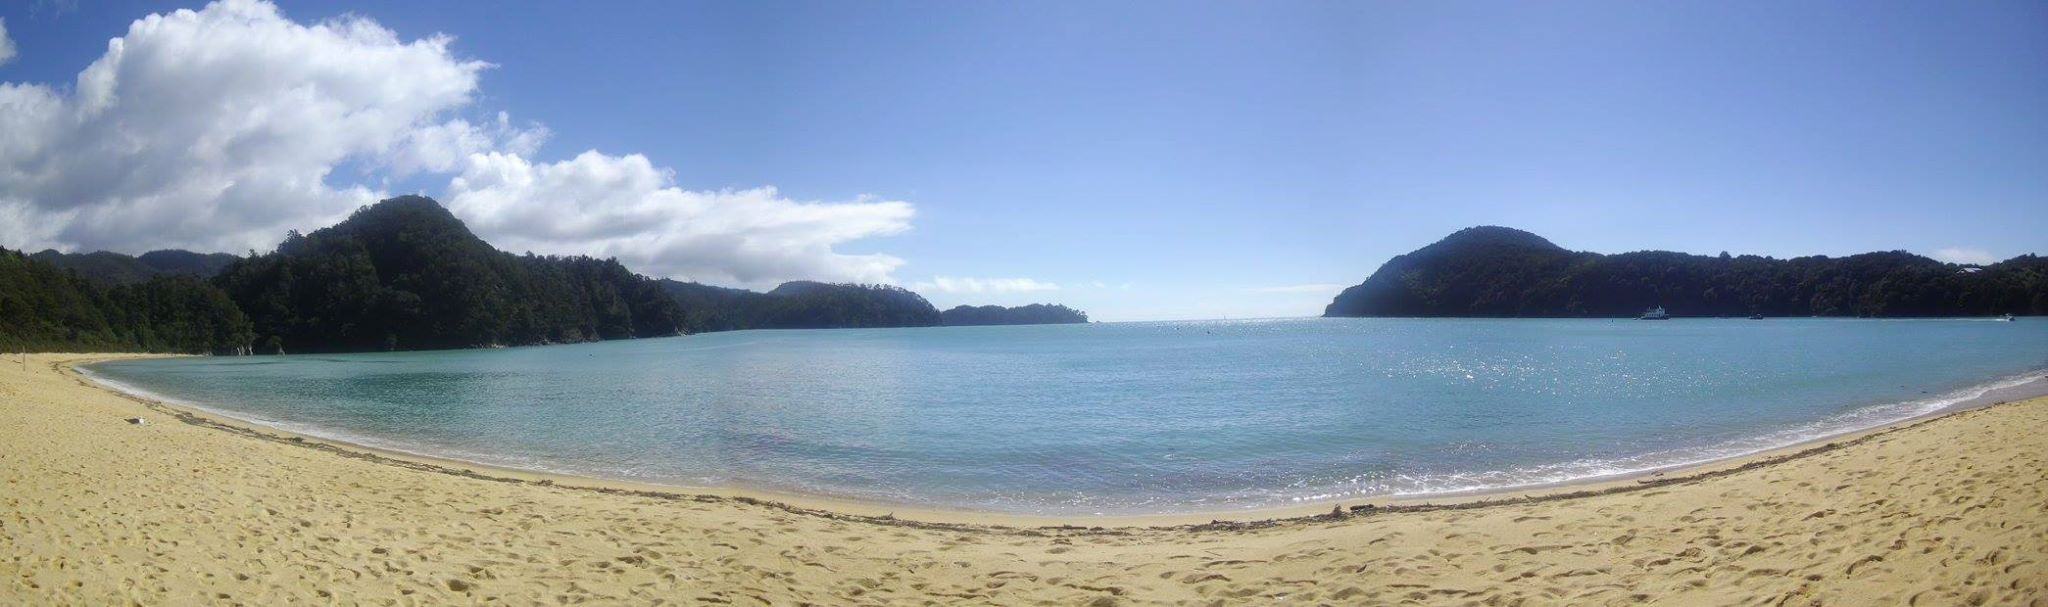 abel tasman national park nz road-trip